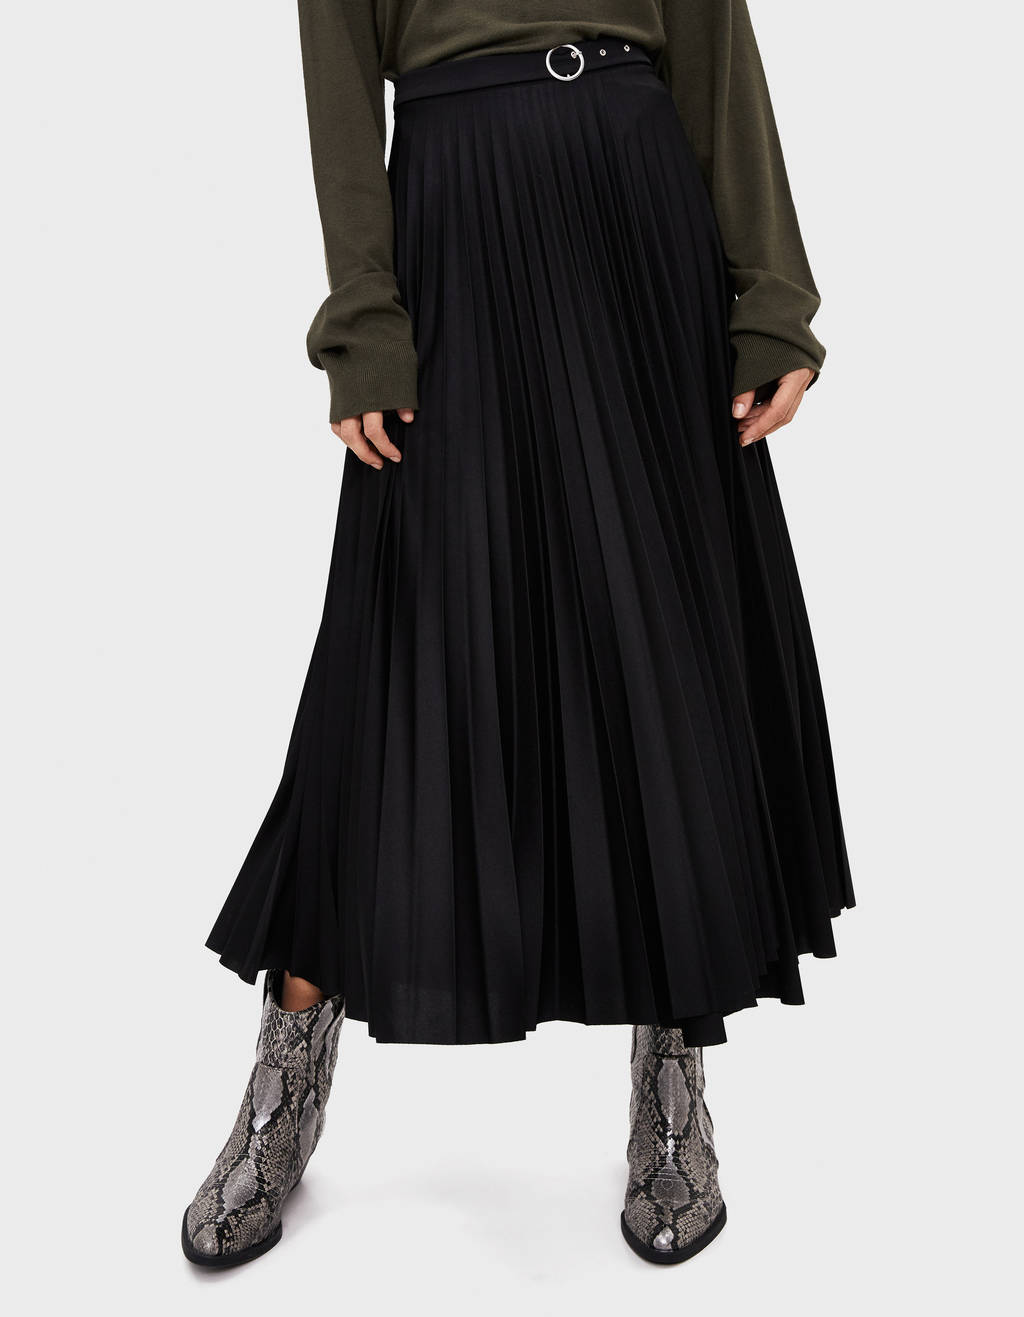 Pleated skirt with buckle